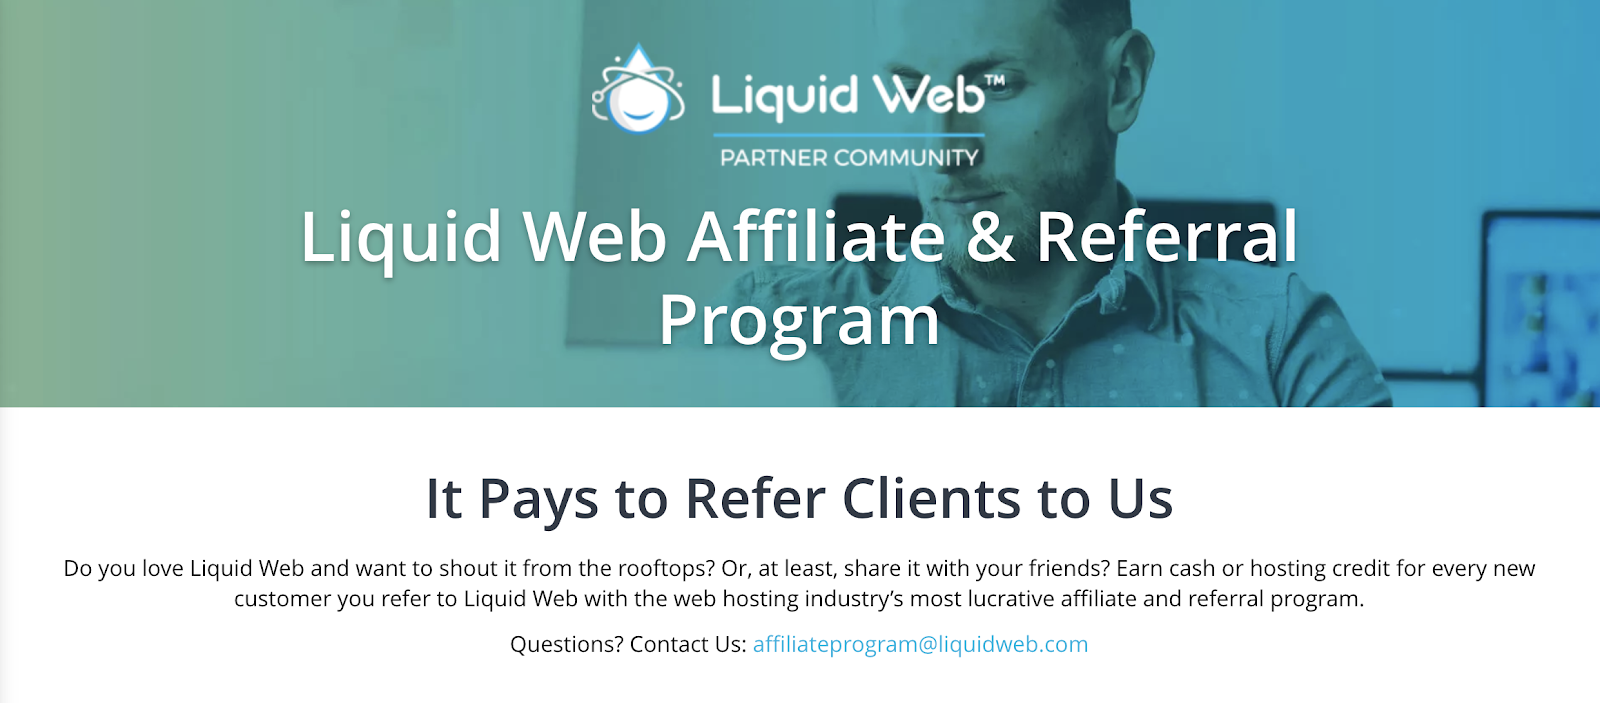 Liquid Web Affiliate Program Landing Page (Screenshot)